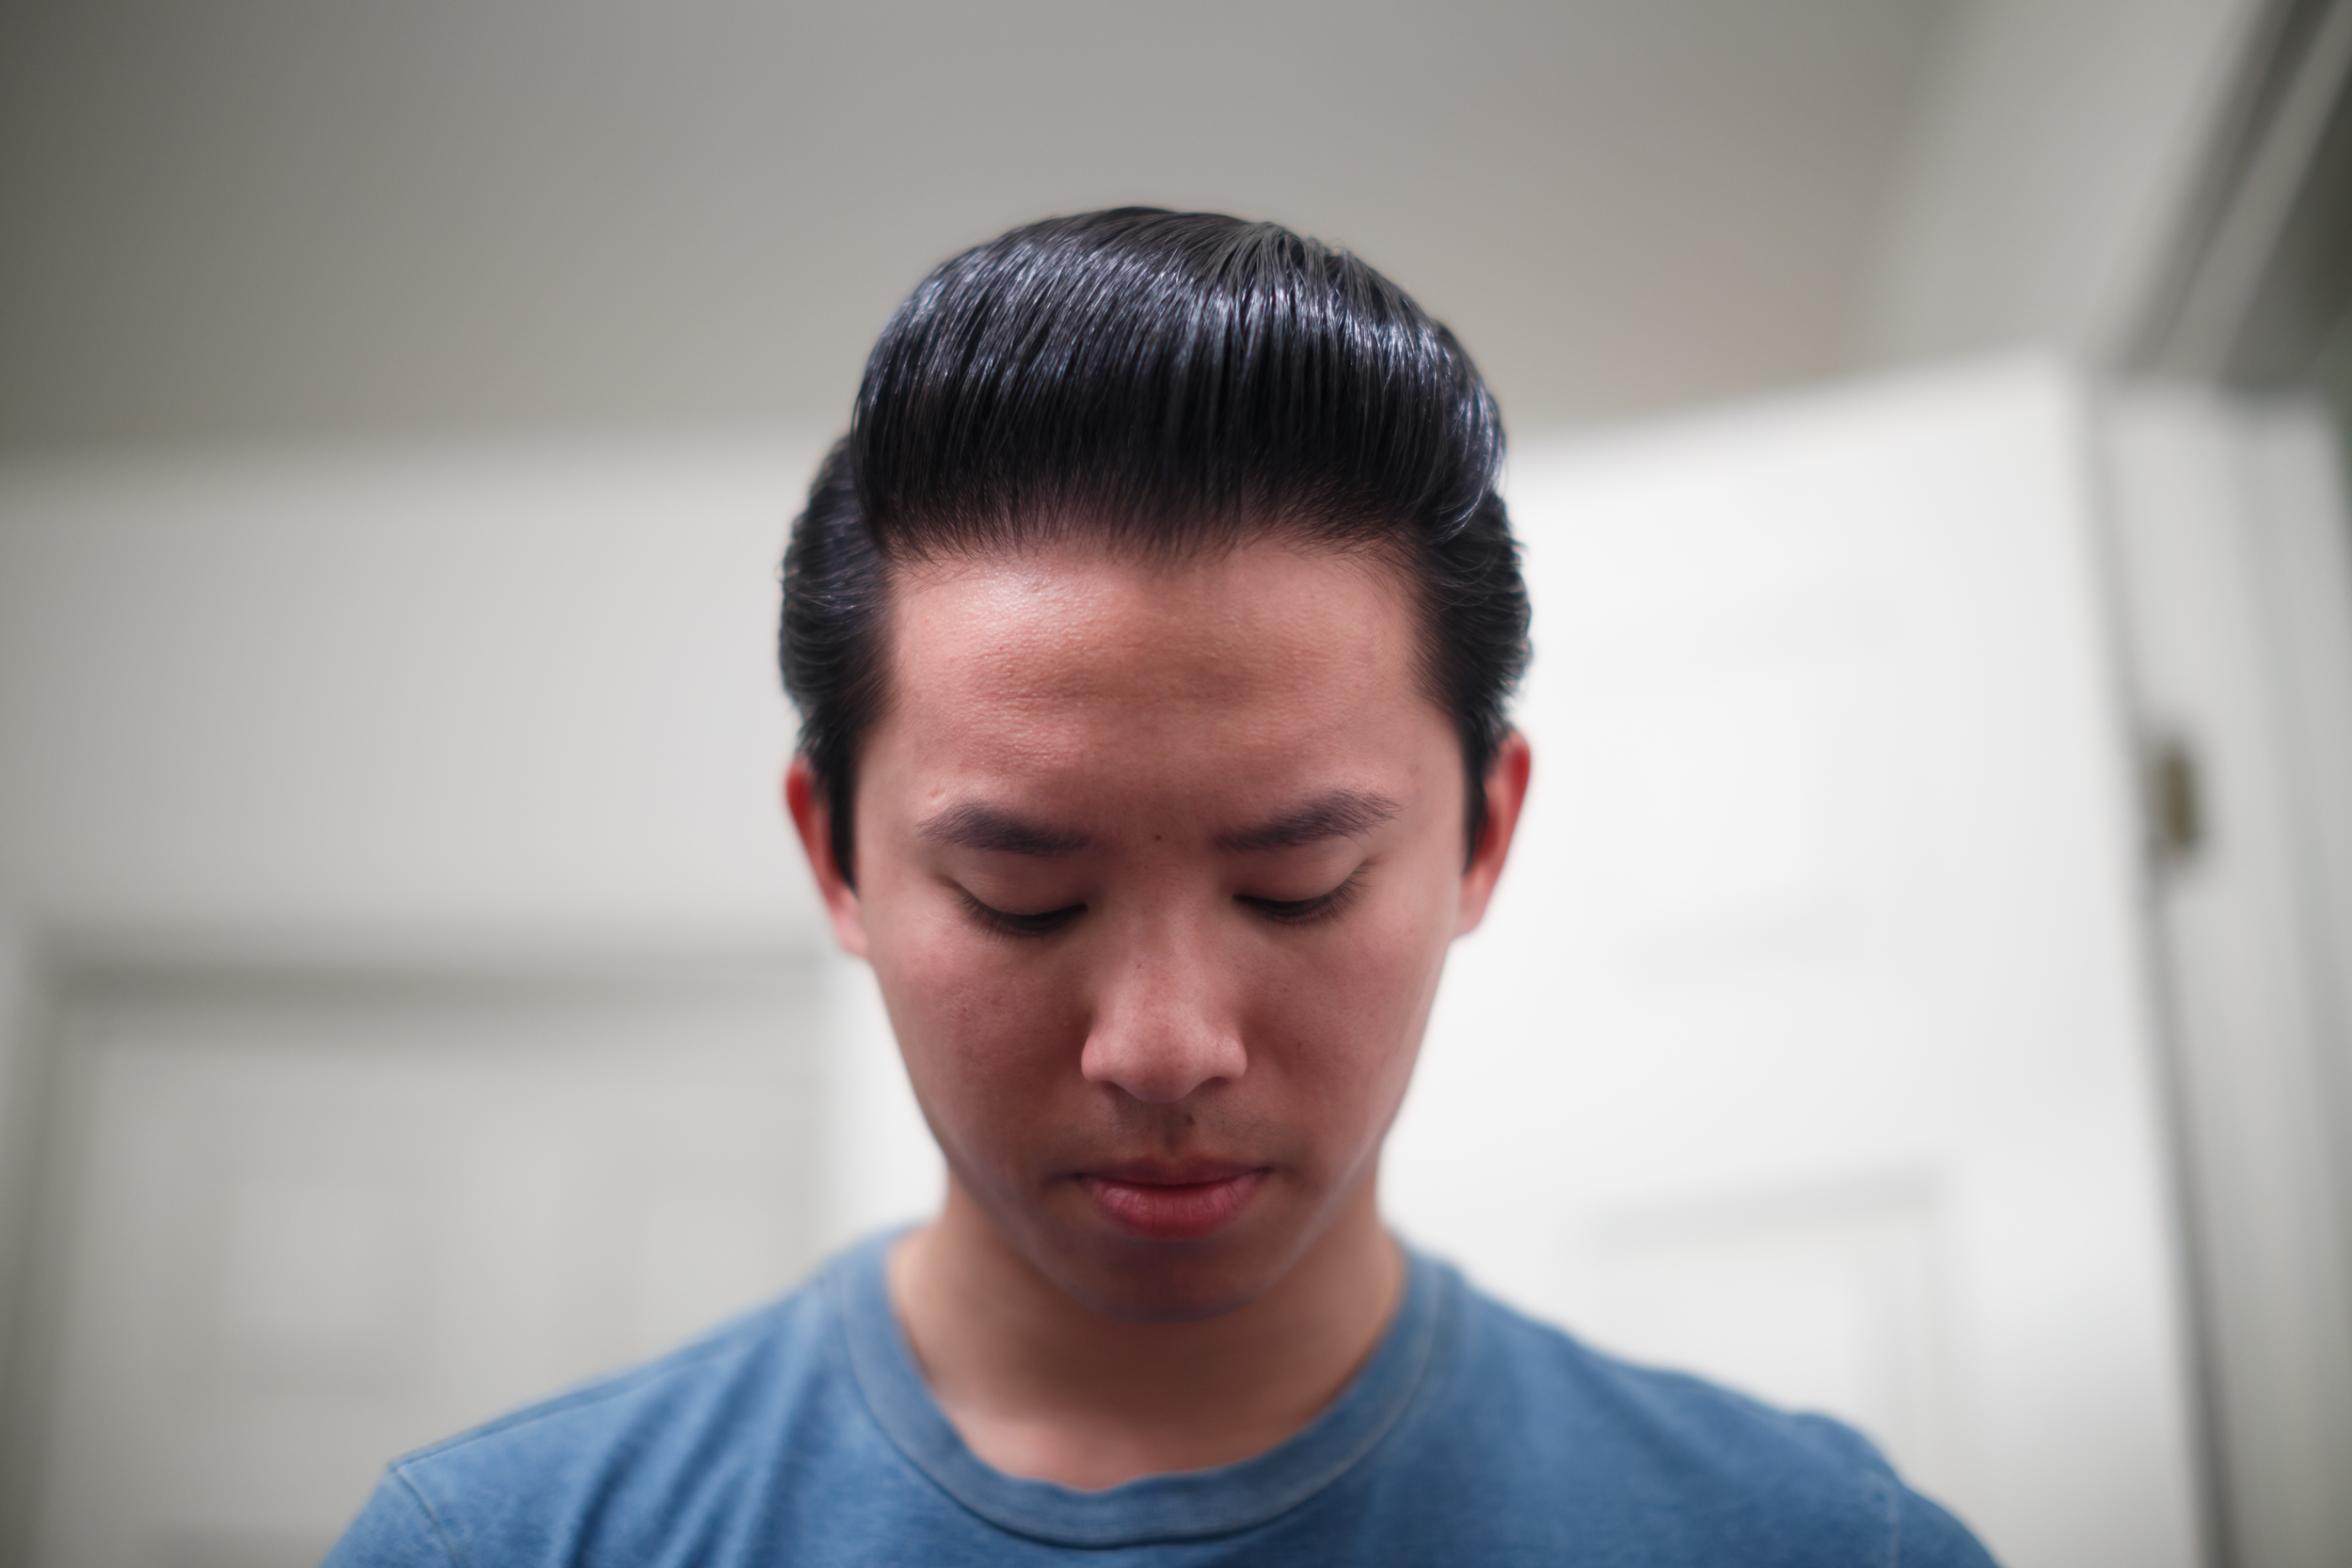 Charming Pomade Cool Grease CoolGrease Hedgelion Japan Japanese Hair Hairstyle Pomp Pompadour The_Pomp.